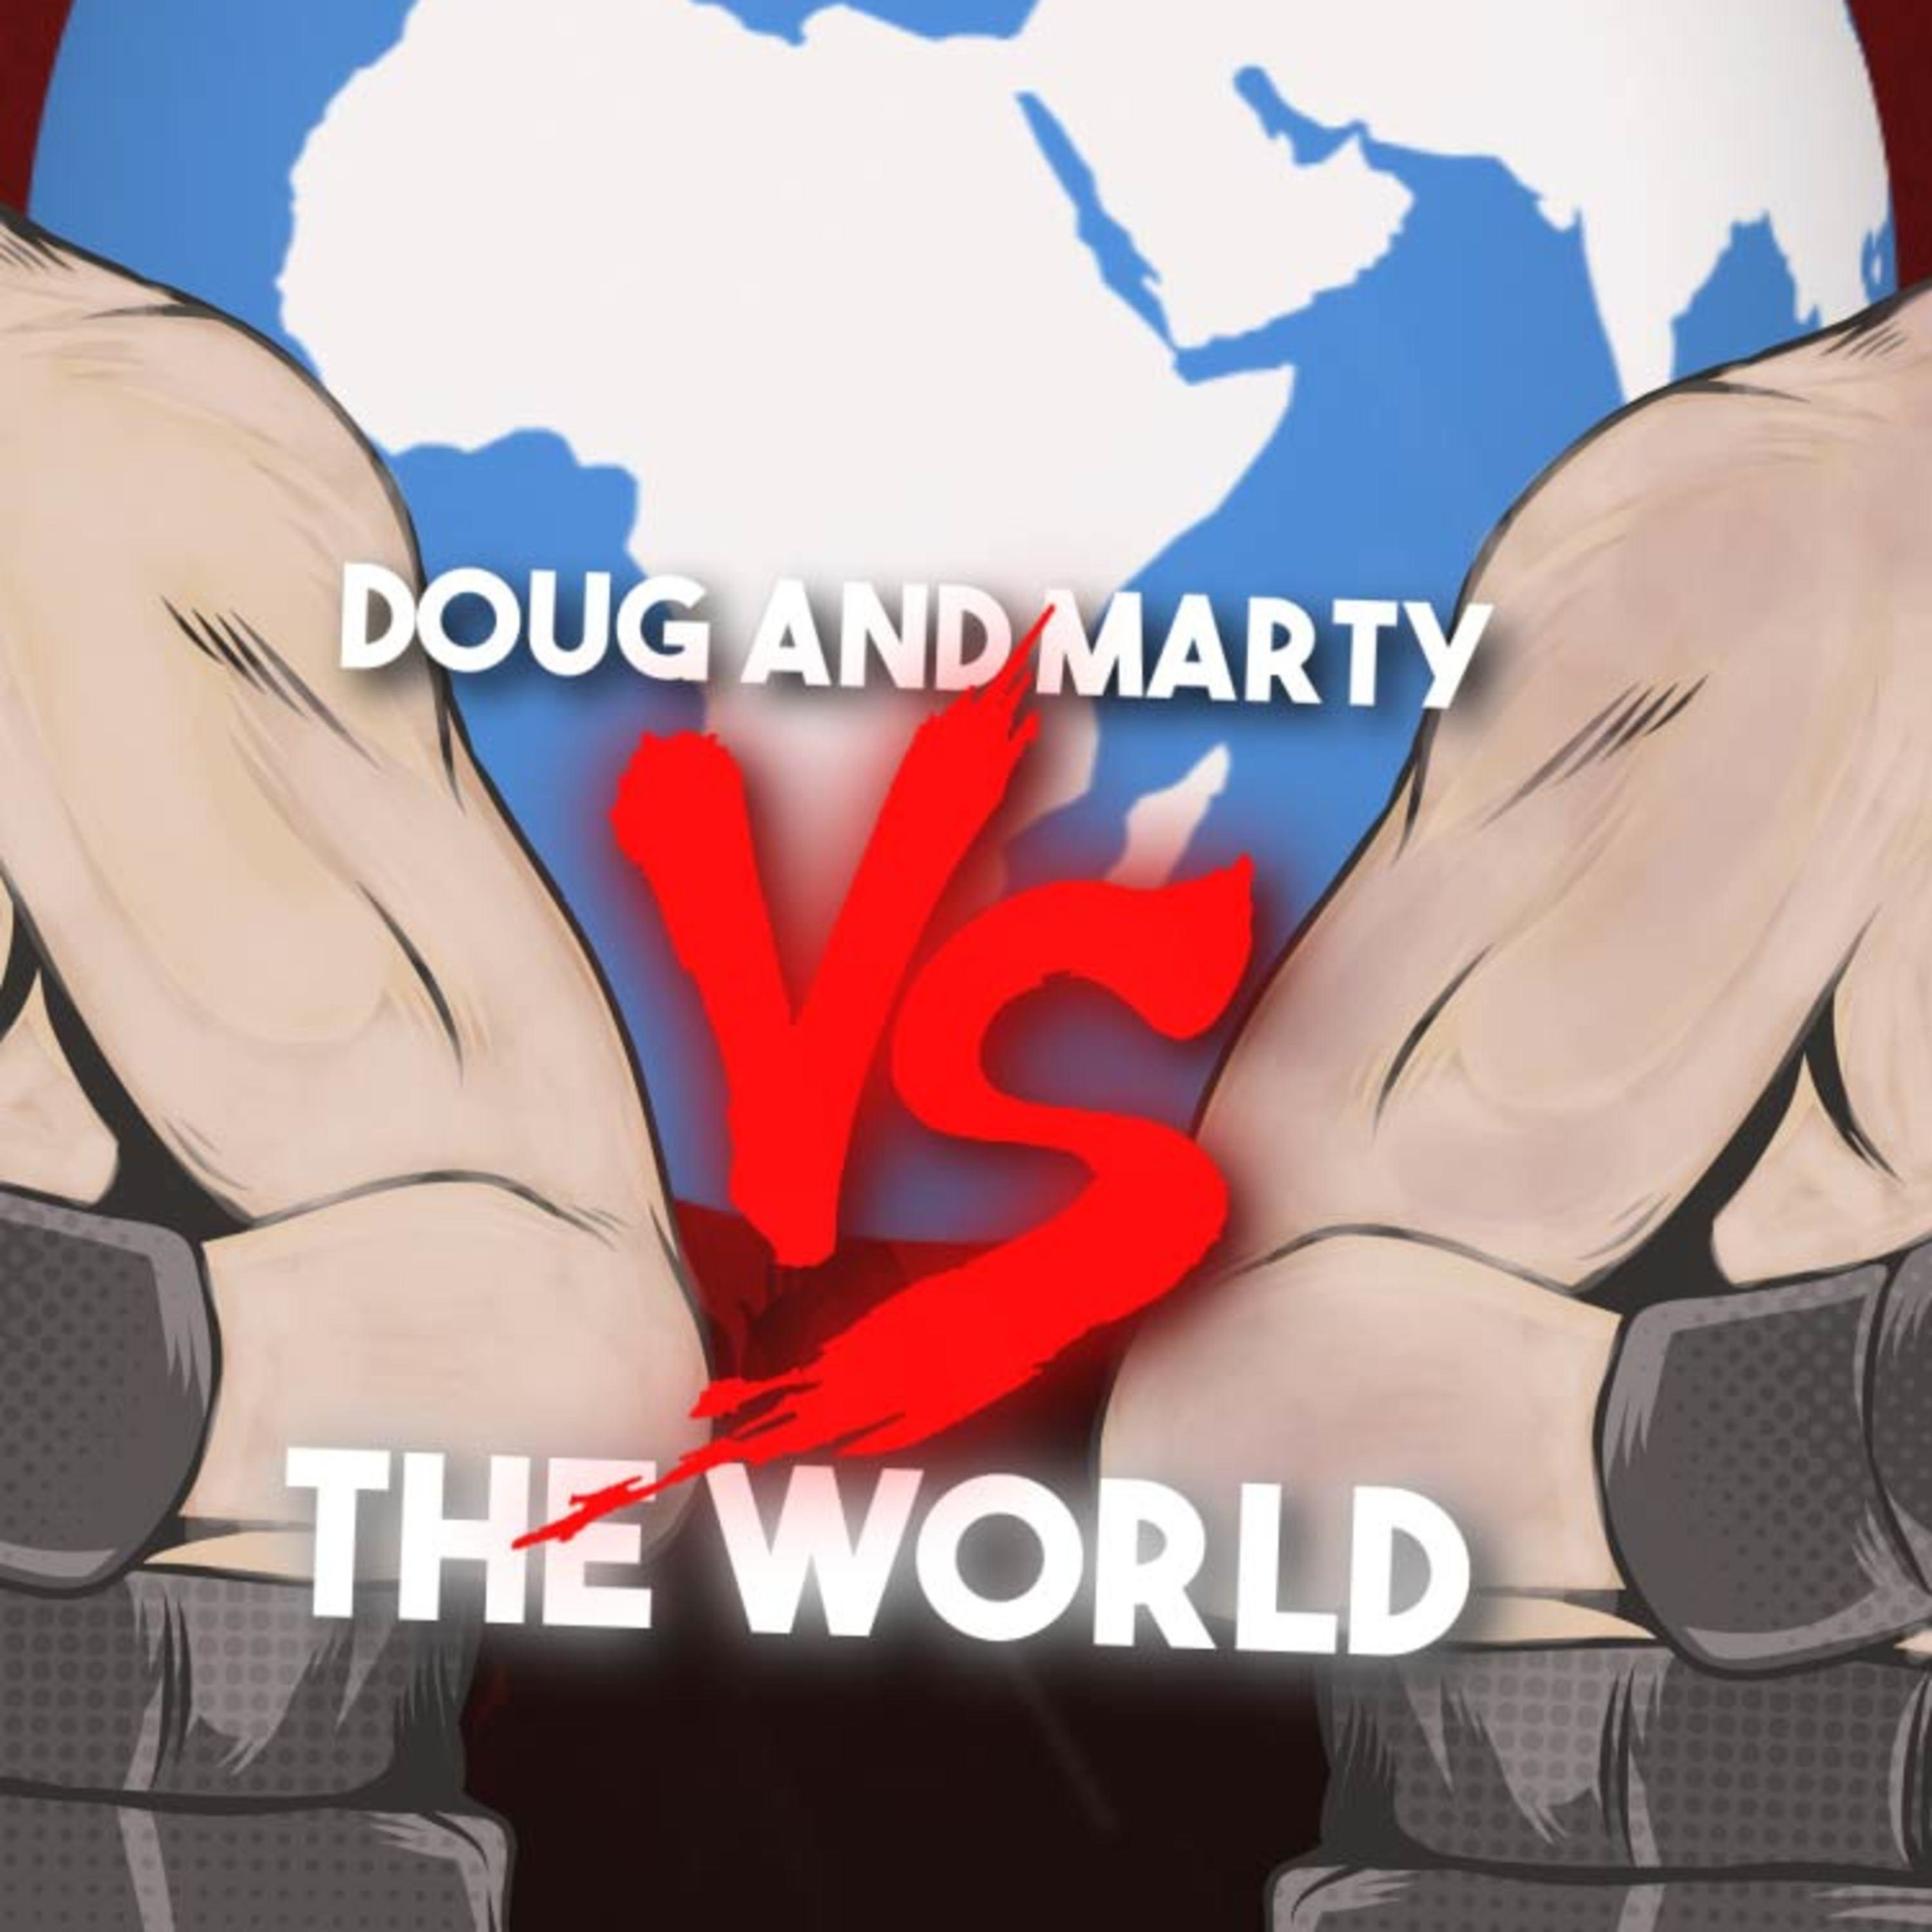 Doug and Marty Vs. The World with Special Guest Representative Bob Mccaslin